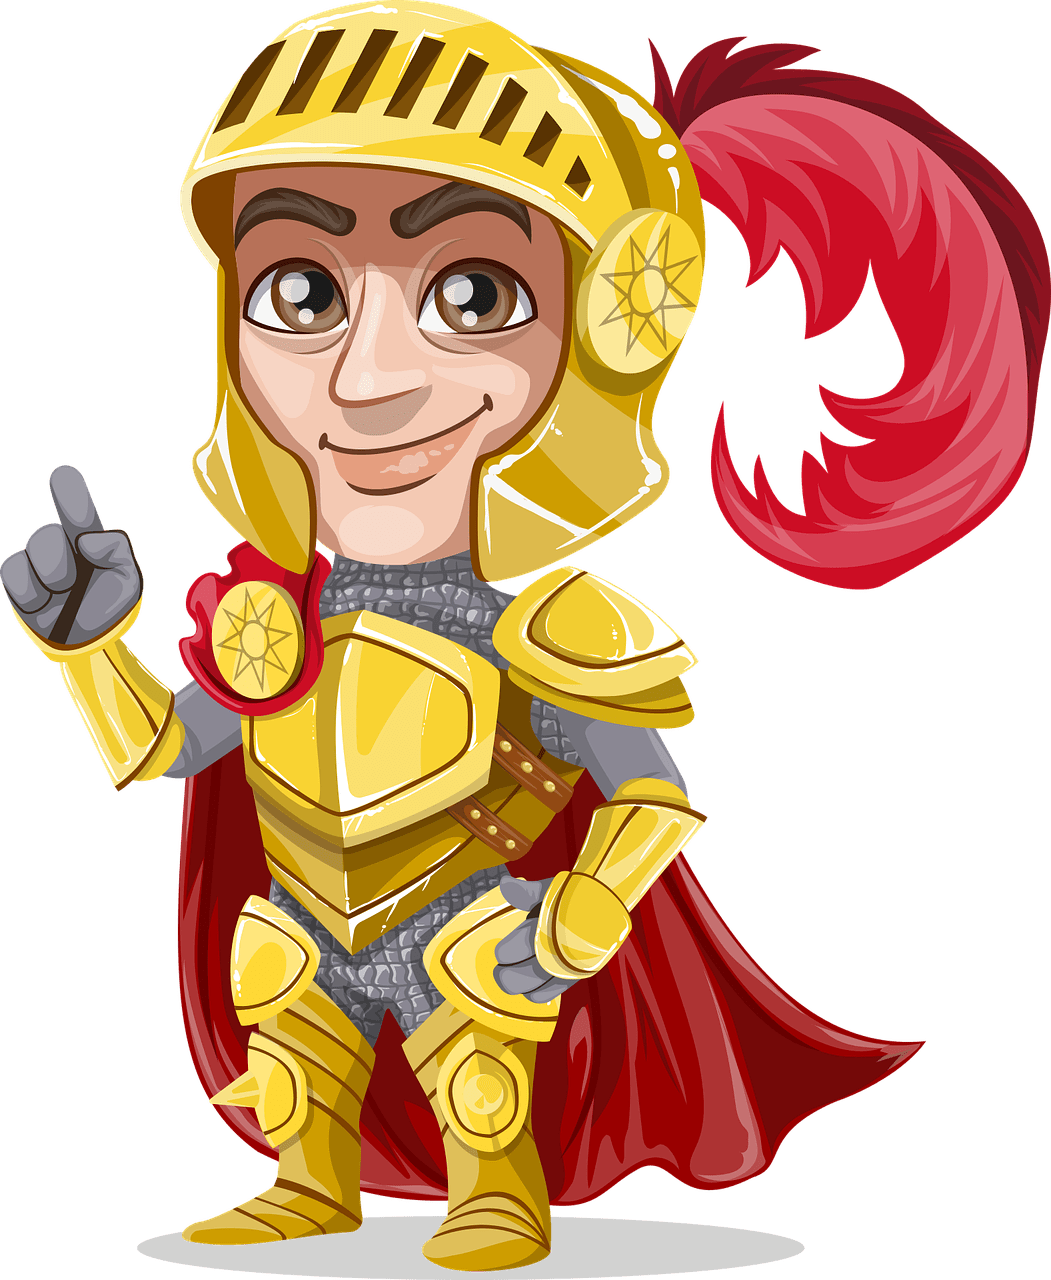 I think it s. Knight clipart europe medieval